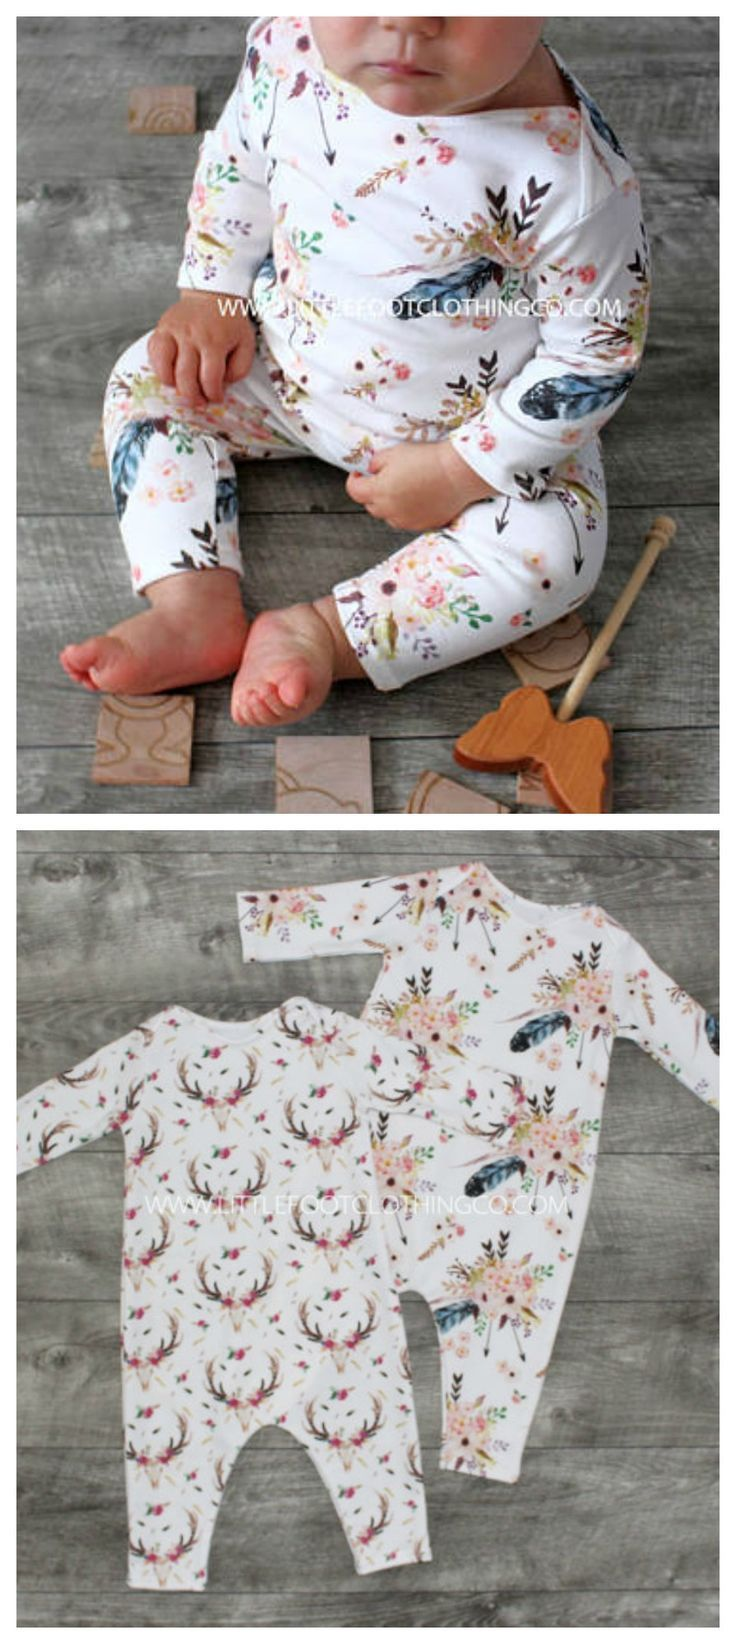 Baby girl romper, baby girl clothes, organic romper, organic baby clothes, boho clothing, boho romper, boho flowers, infant clothing - Are You A Boho-Chic? Check out our groovy Bohemian Fashion collection! Our items go viral all over the internet. Hurry & https://presentbaby.com